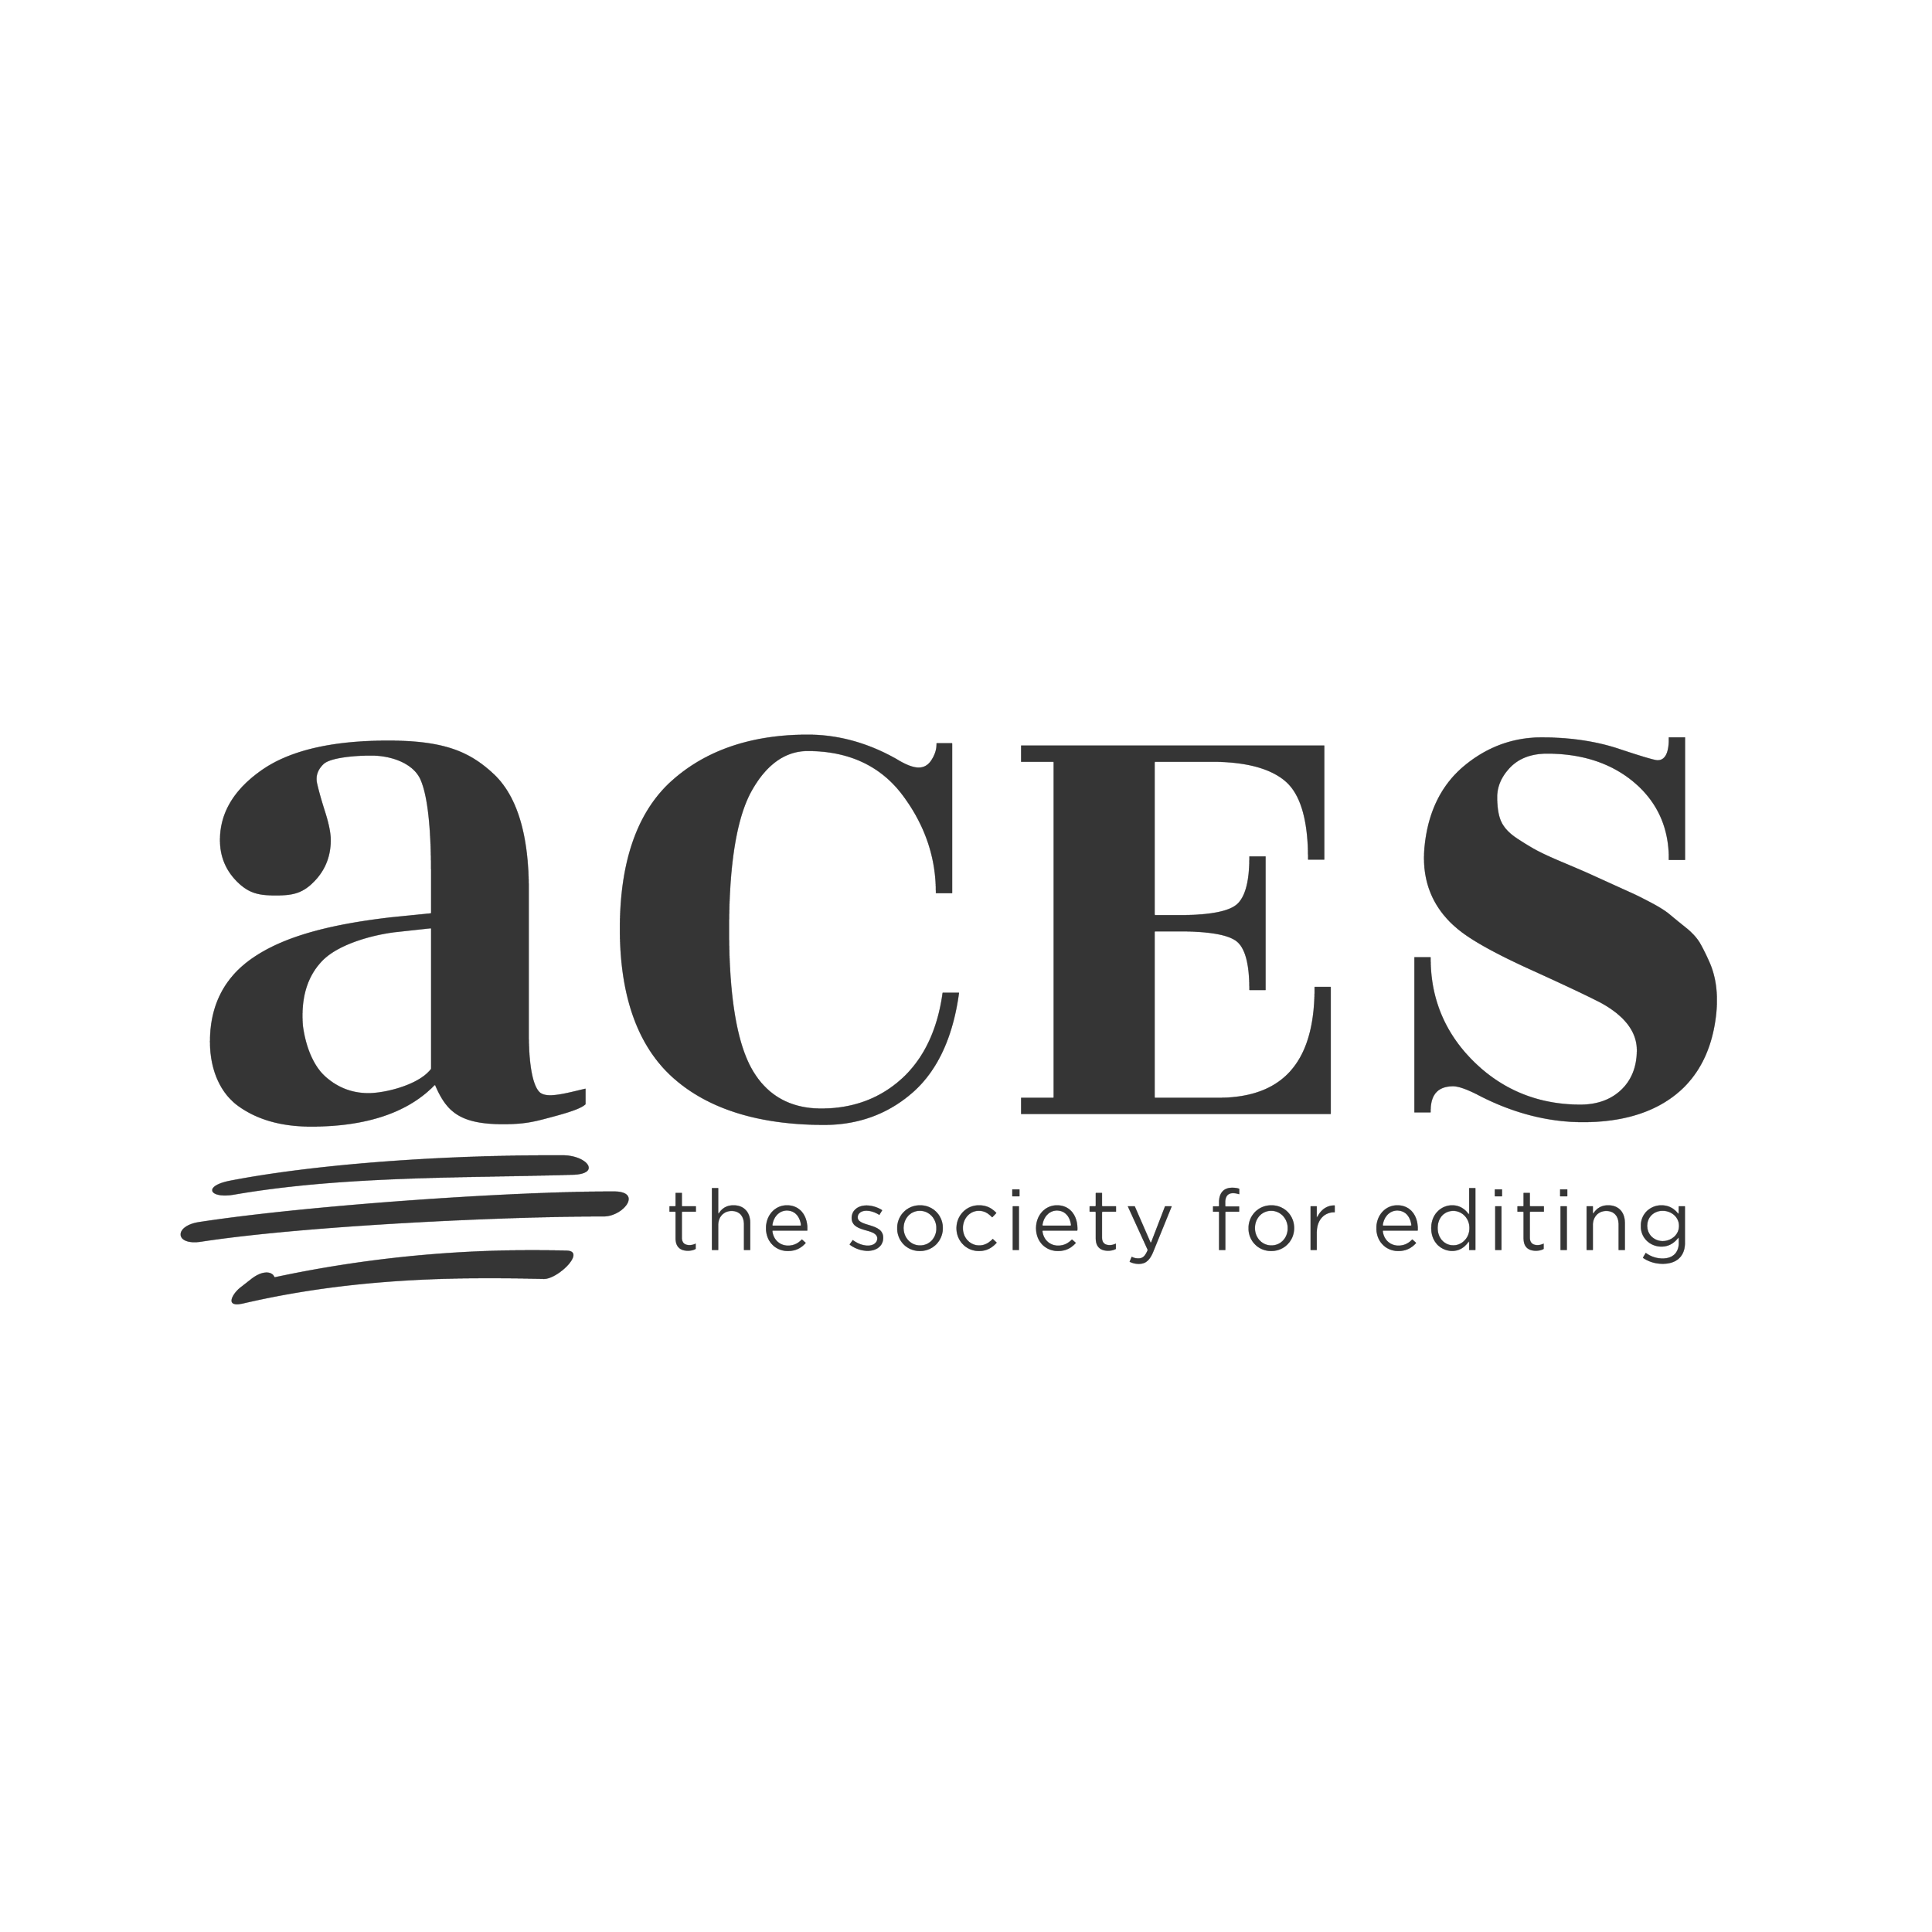 aces-black-logo-with-tagline.png